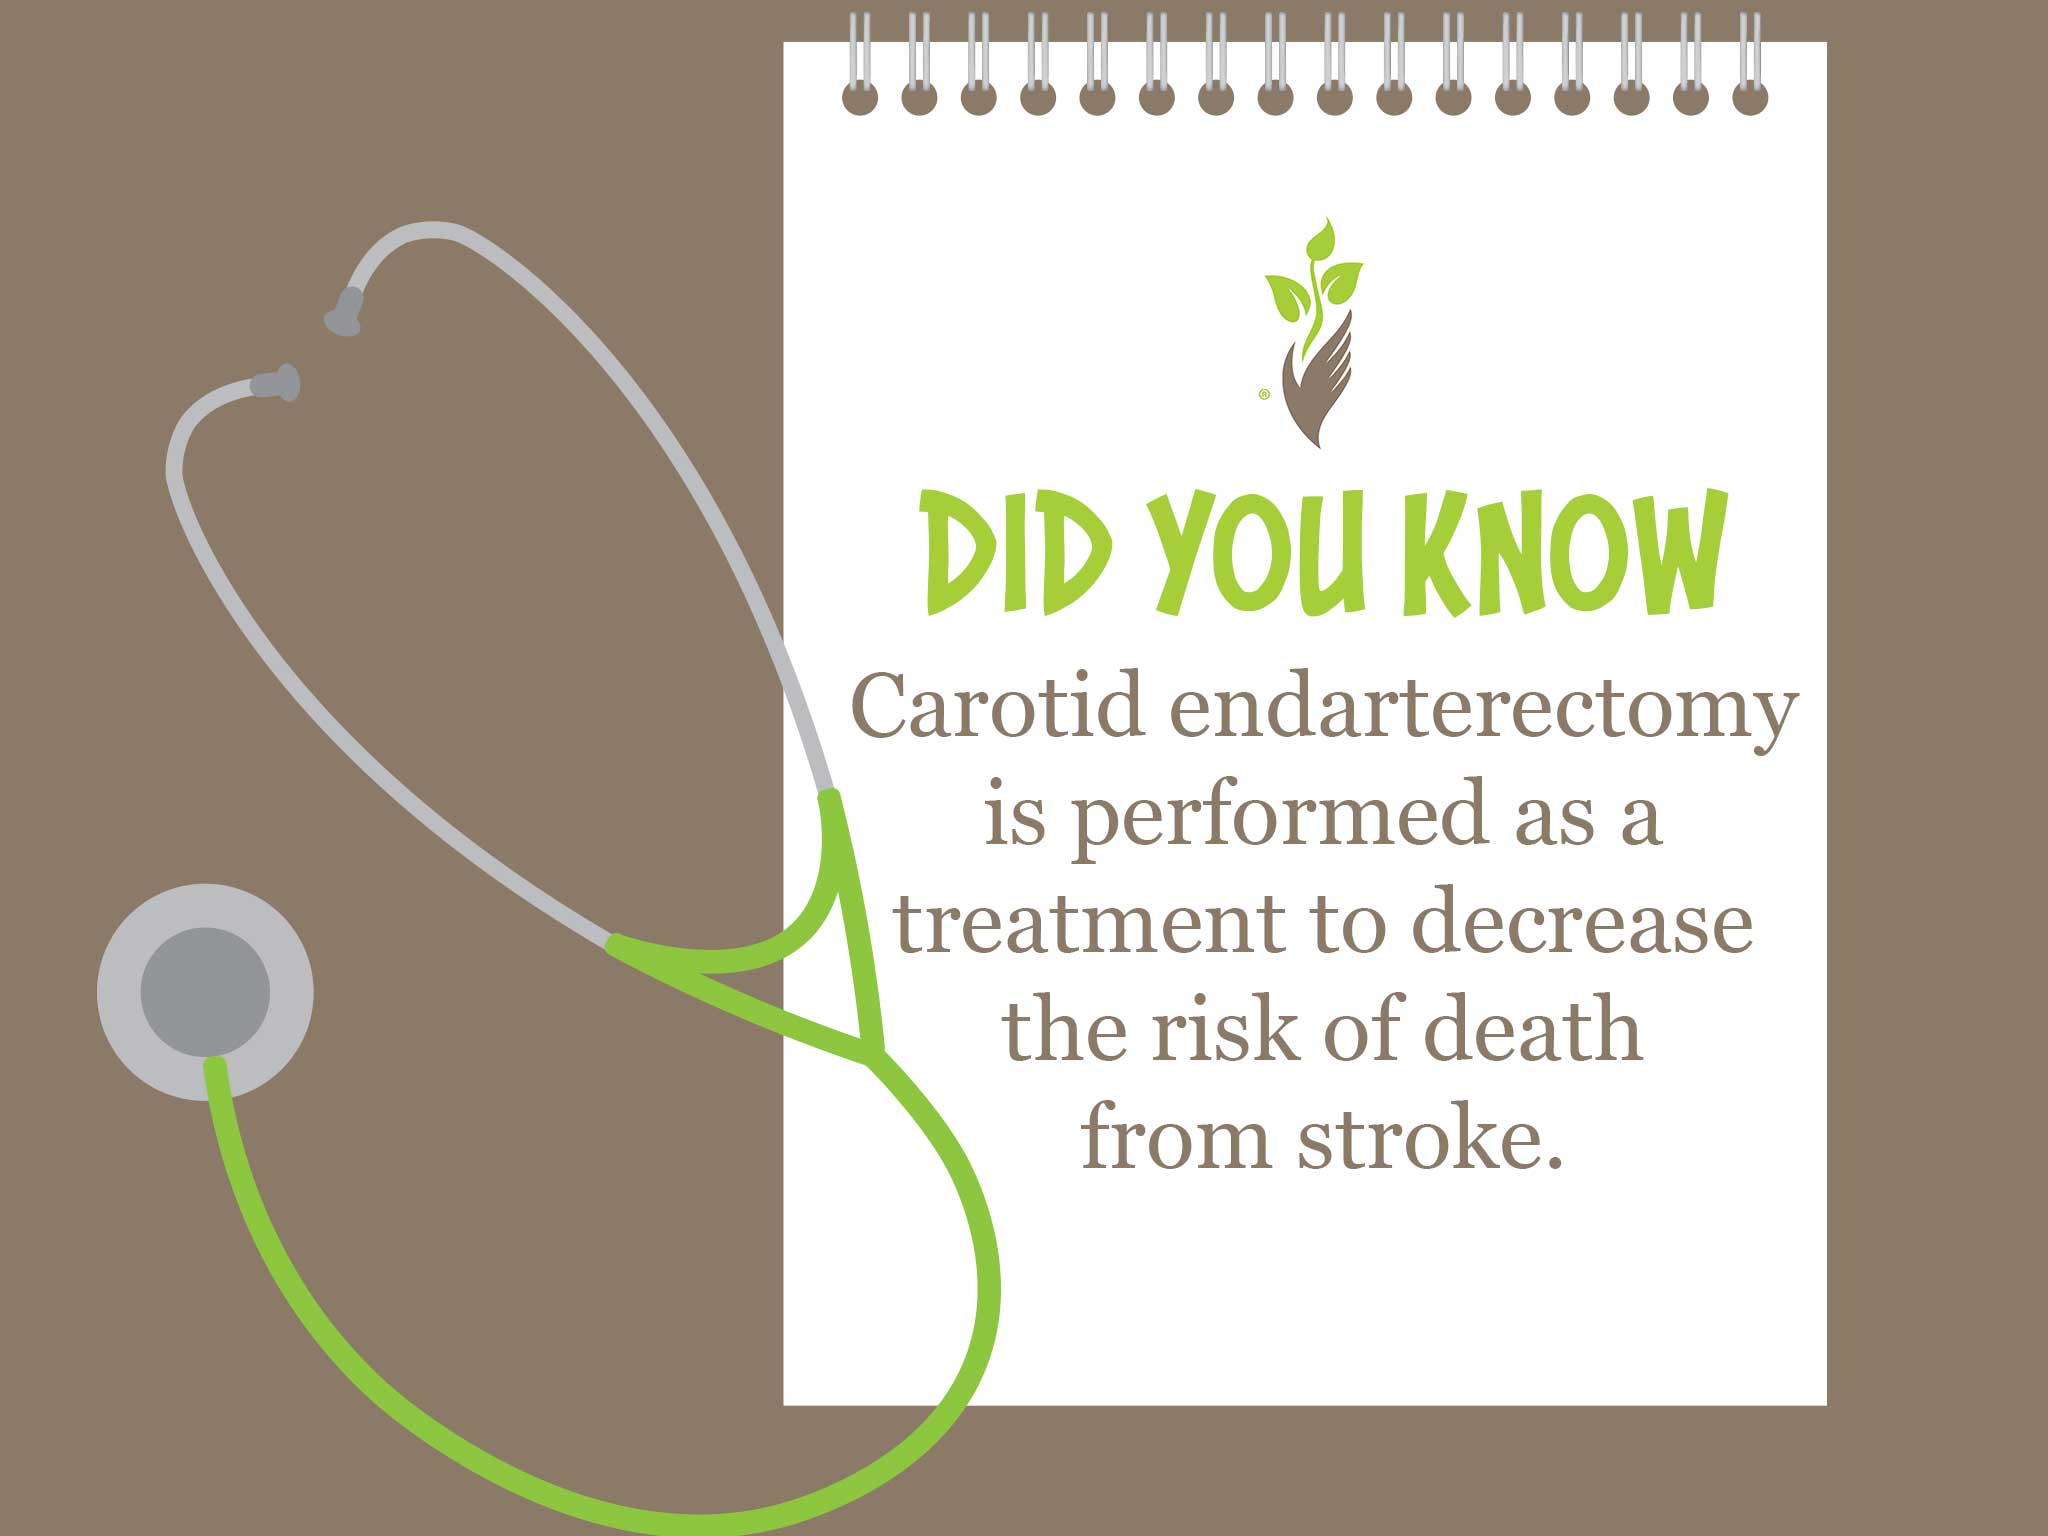 Seniors and Surgery: What You Should Know About Carotid Endarterectomy